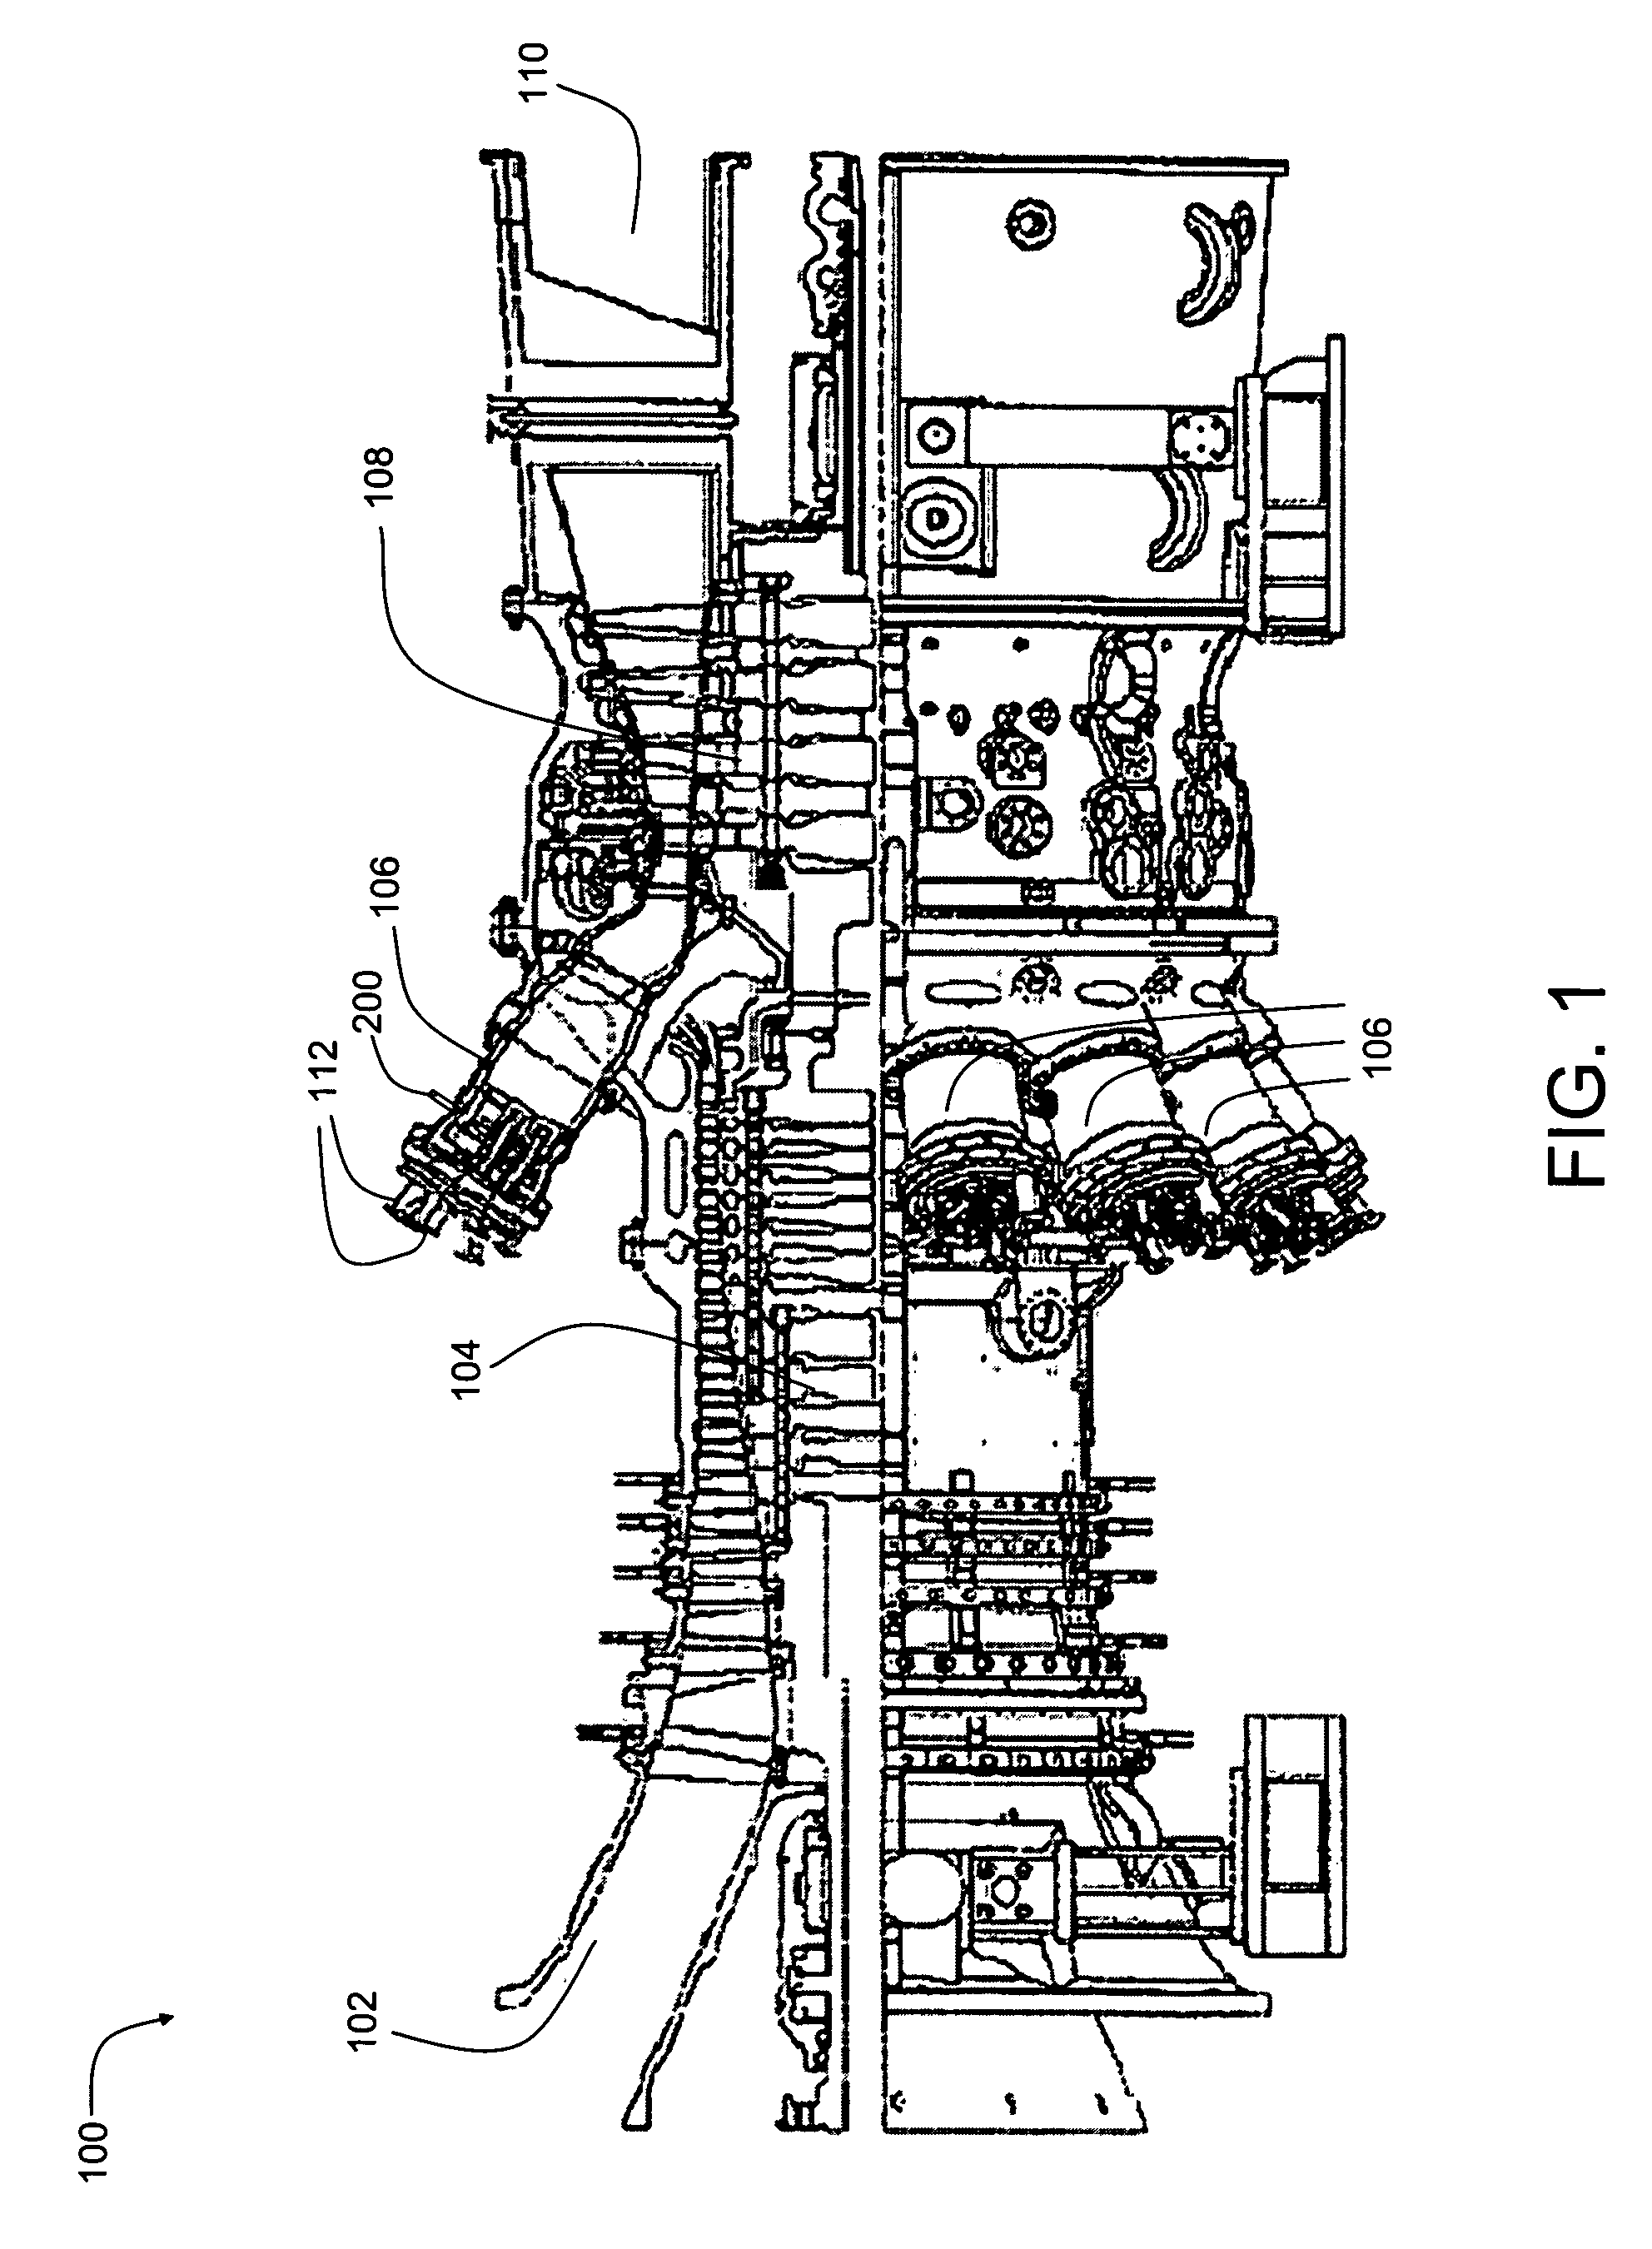 Patent US Systems and methods for detecting a flame in a